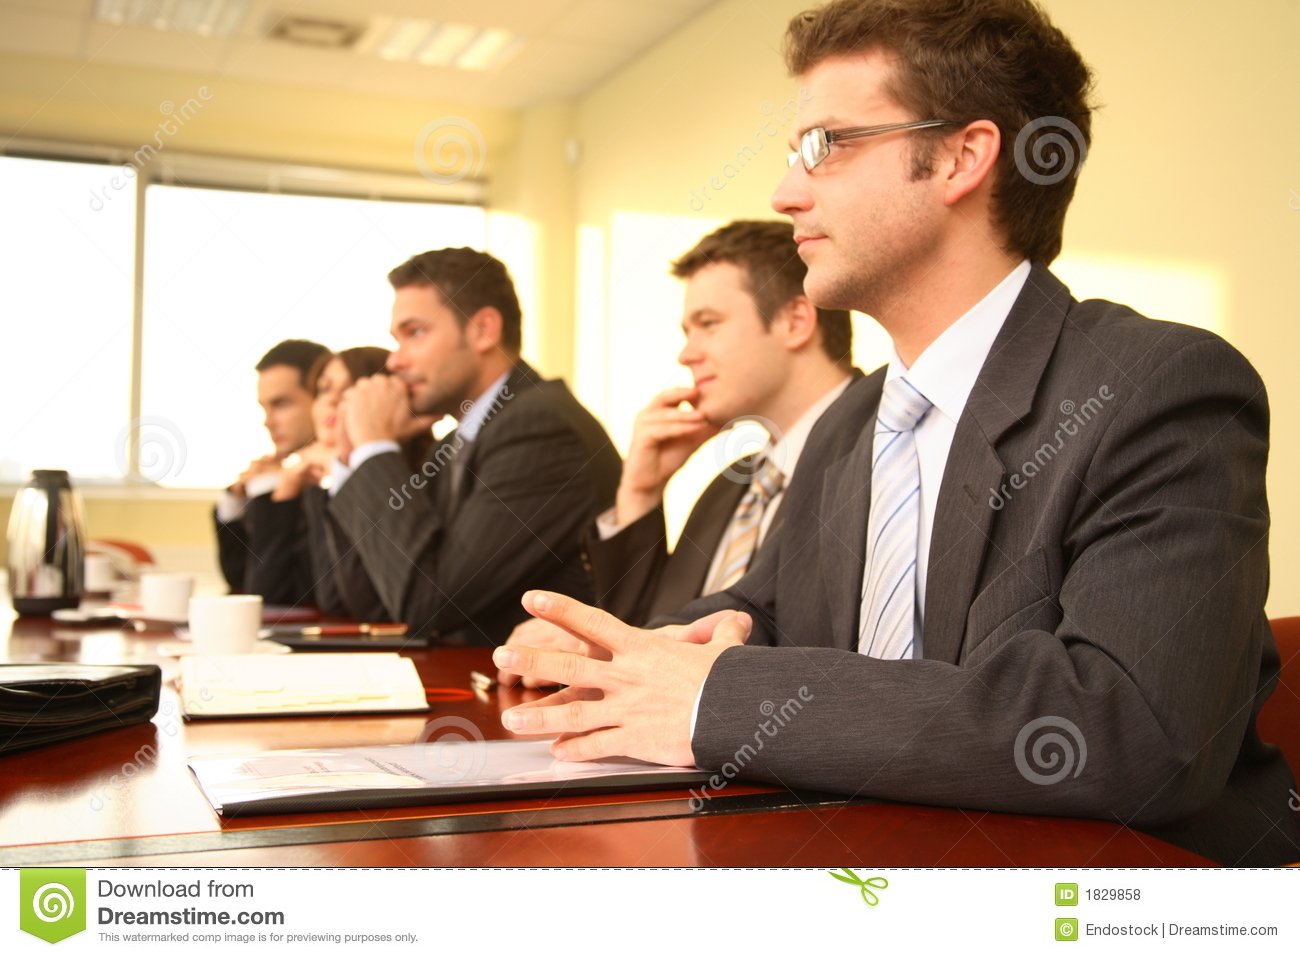 Five professionals at a Conference